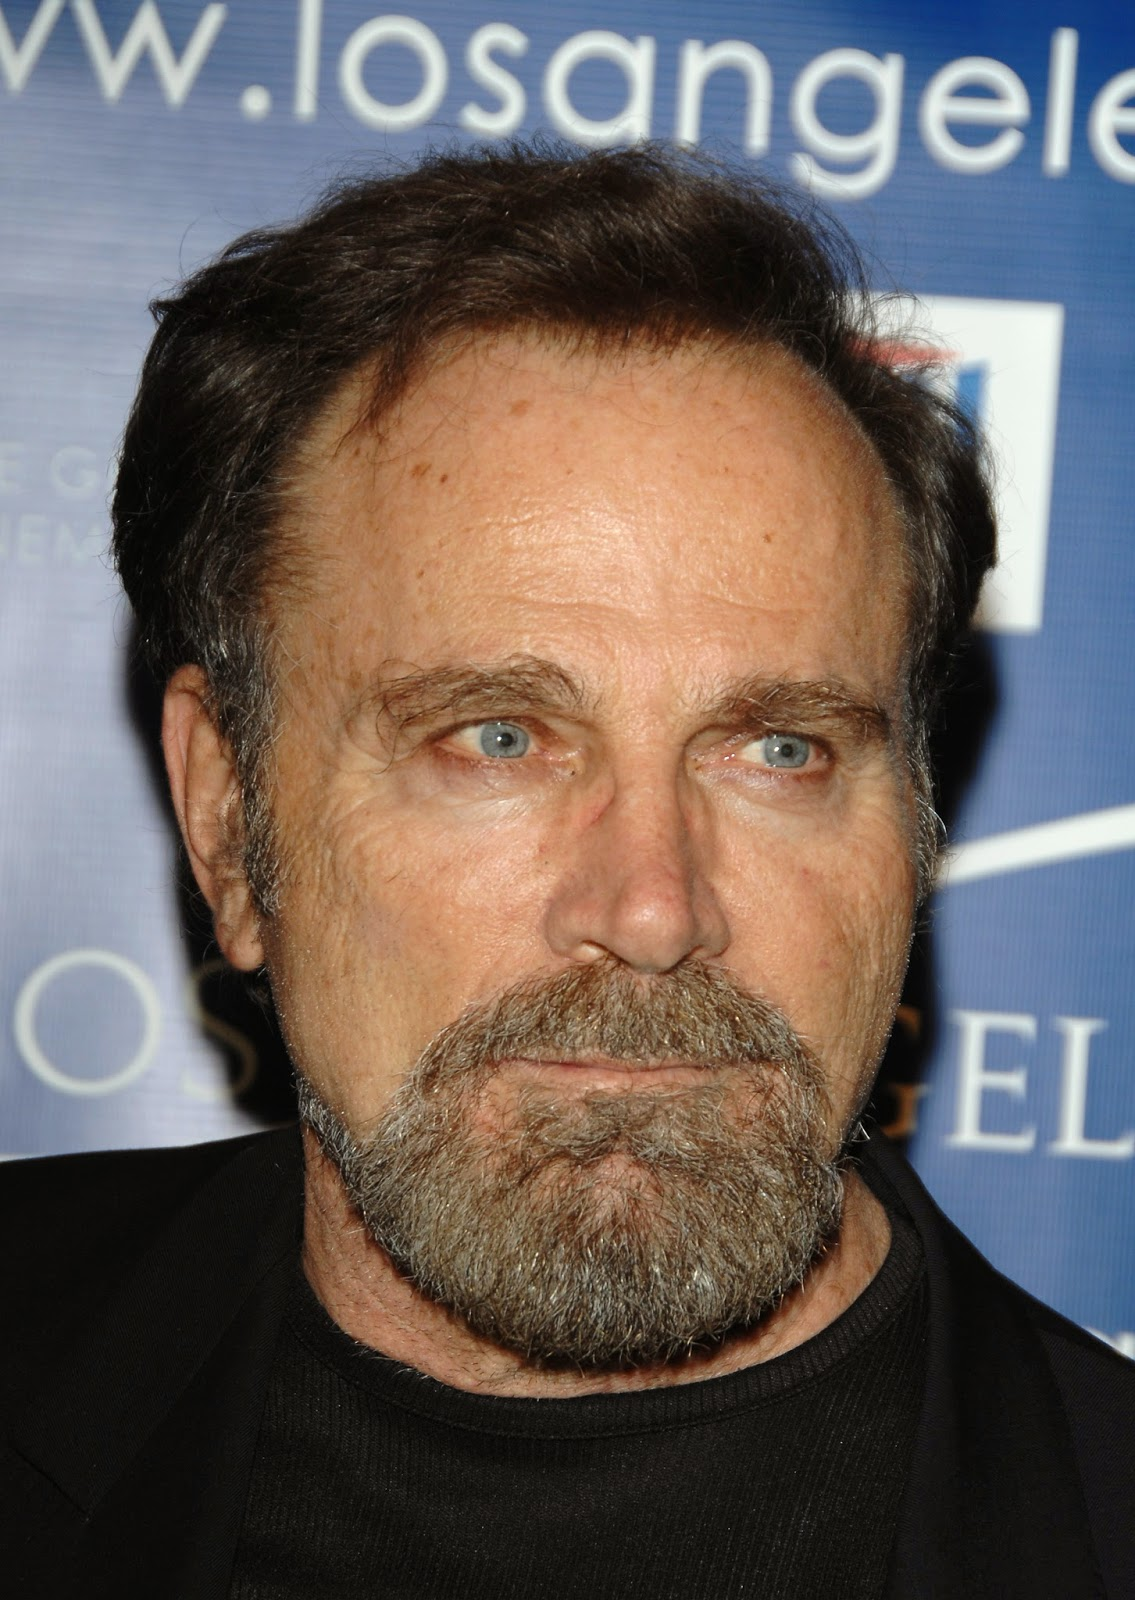 Franco Nero Biography| Profile| Pictures| News